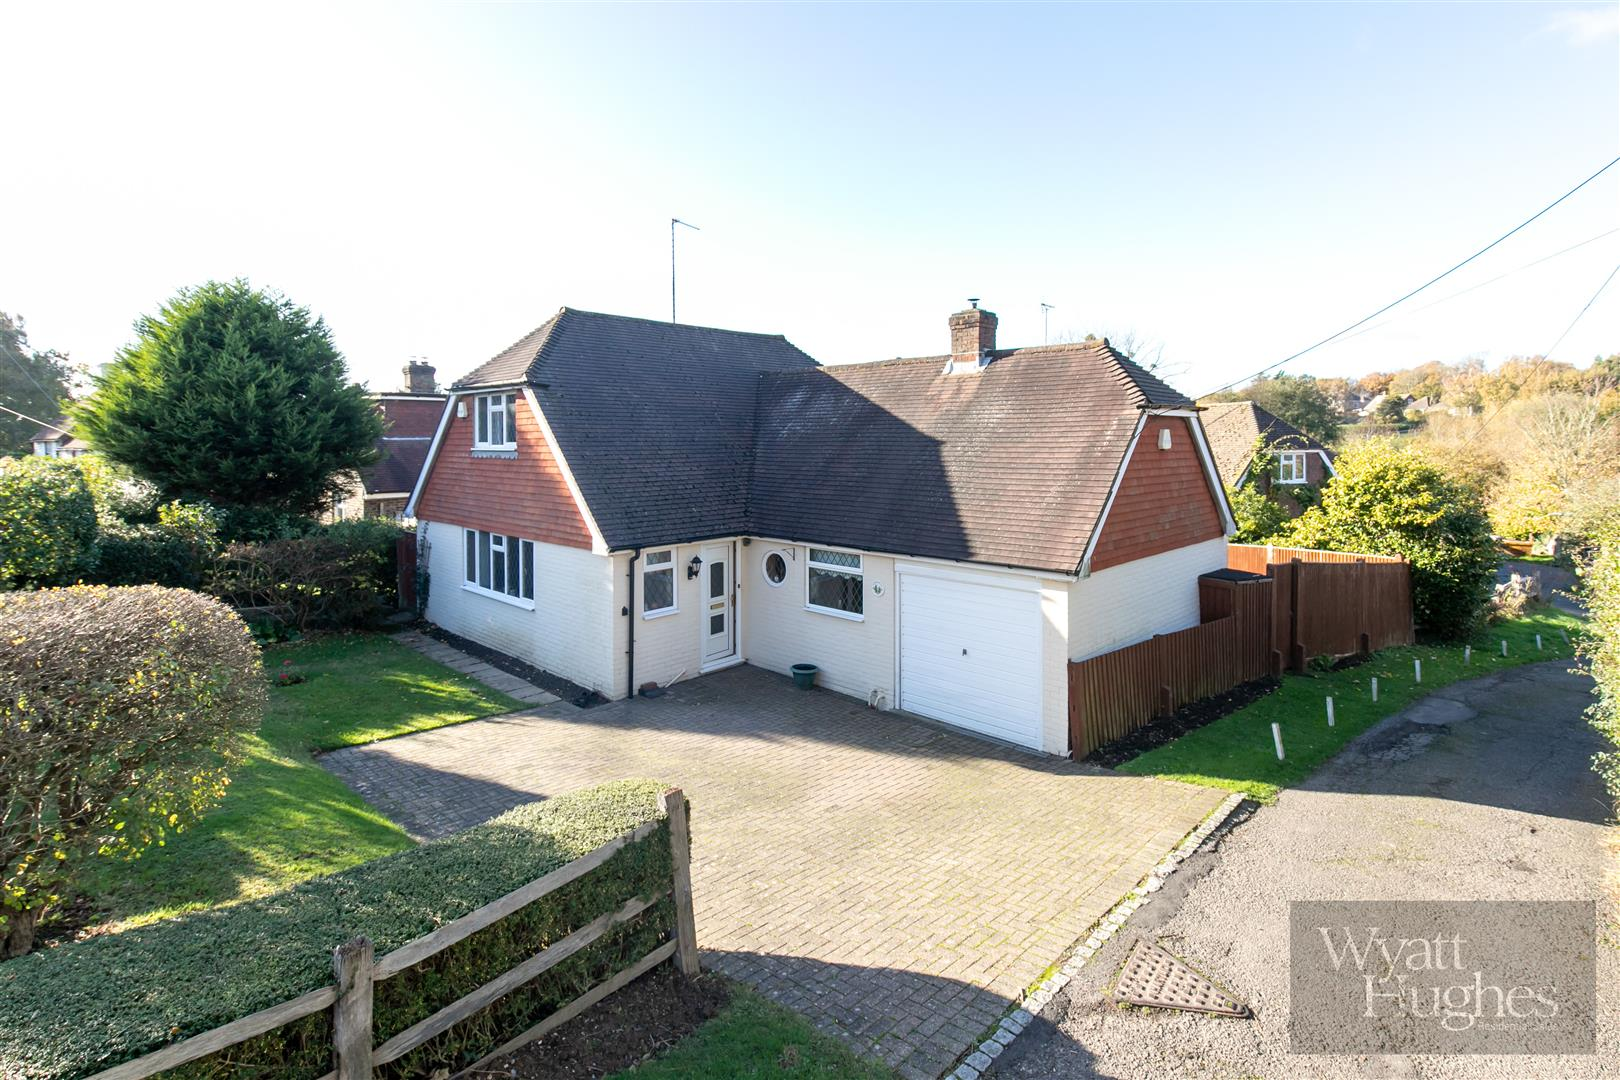 3 bed house for sale in Lower Street, Ninfield, TN33